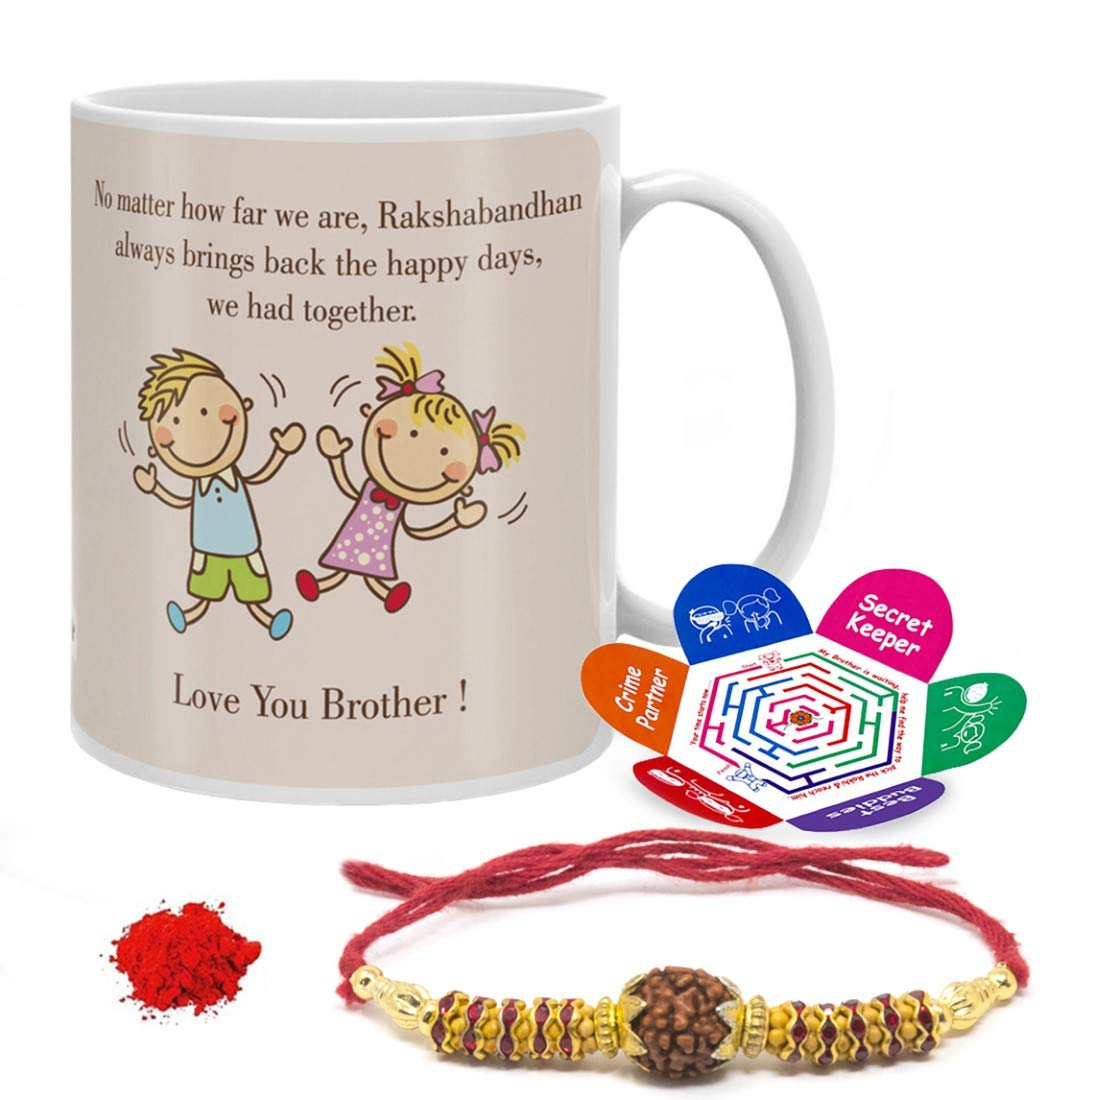 2 of Indigifts Raksha Bandhan Gift Set Of Mug 330 Ml, Crystal Rakhi For Brother, Roli, Chawal & Greeting Card